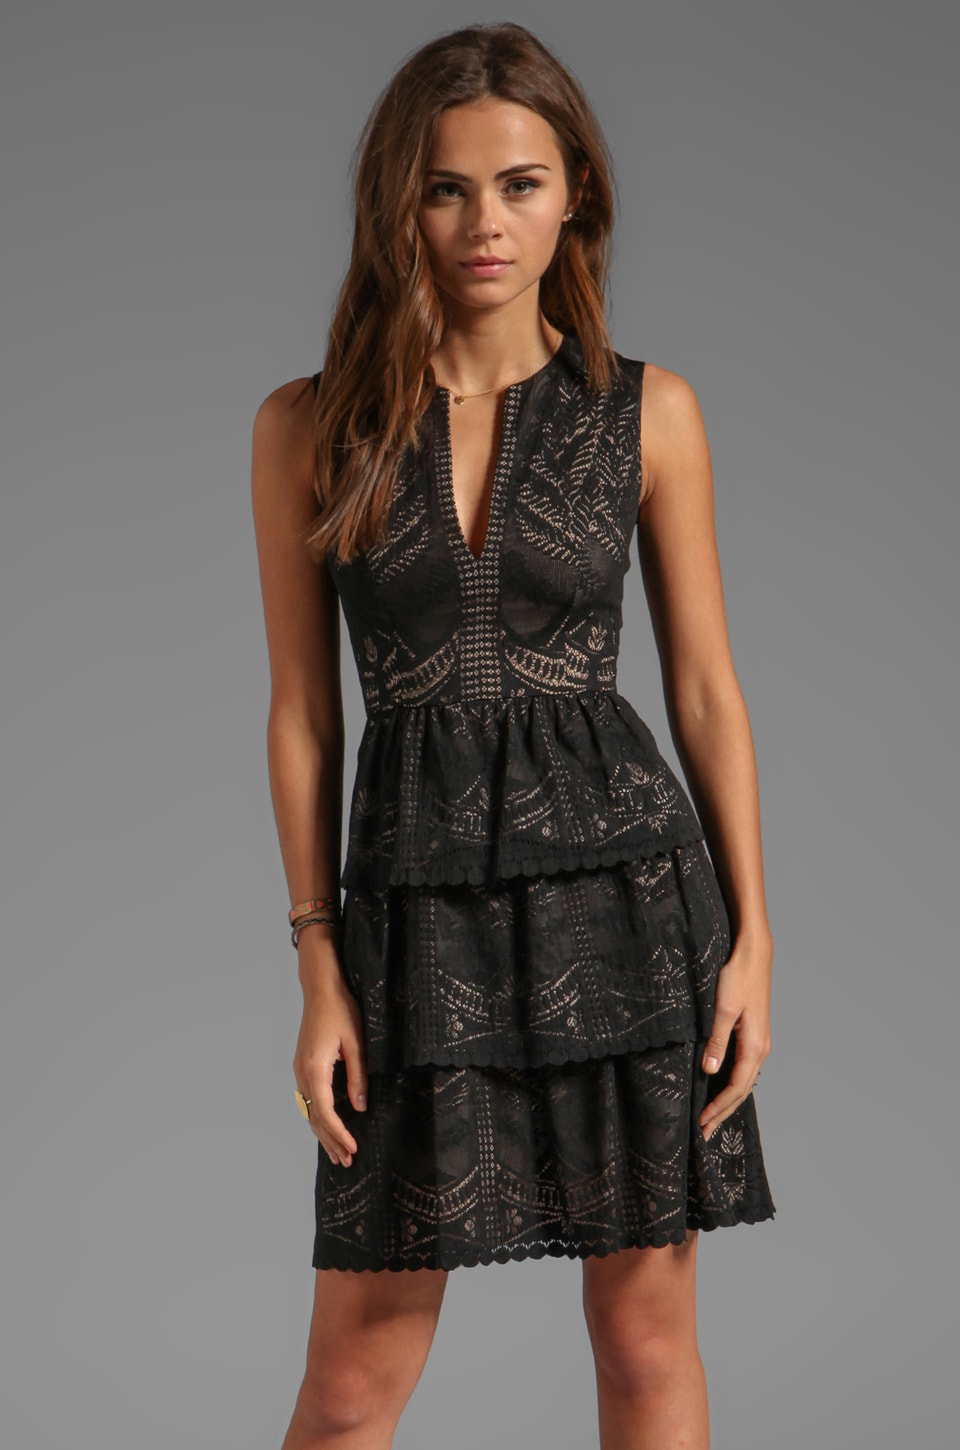 BCBGMAXAZRIA Sleeveless Lace Dress in Black